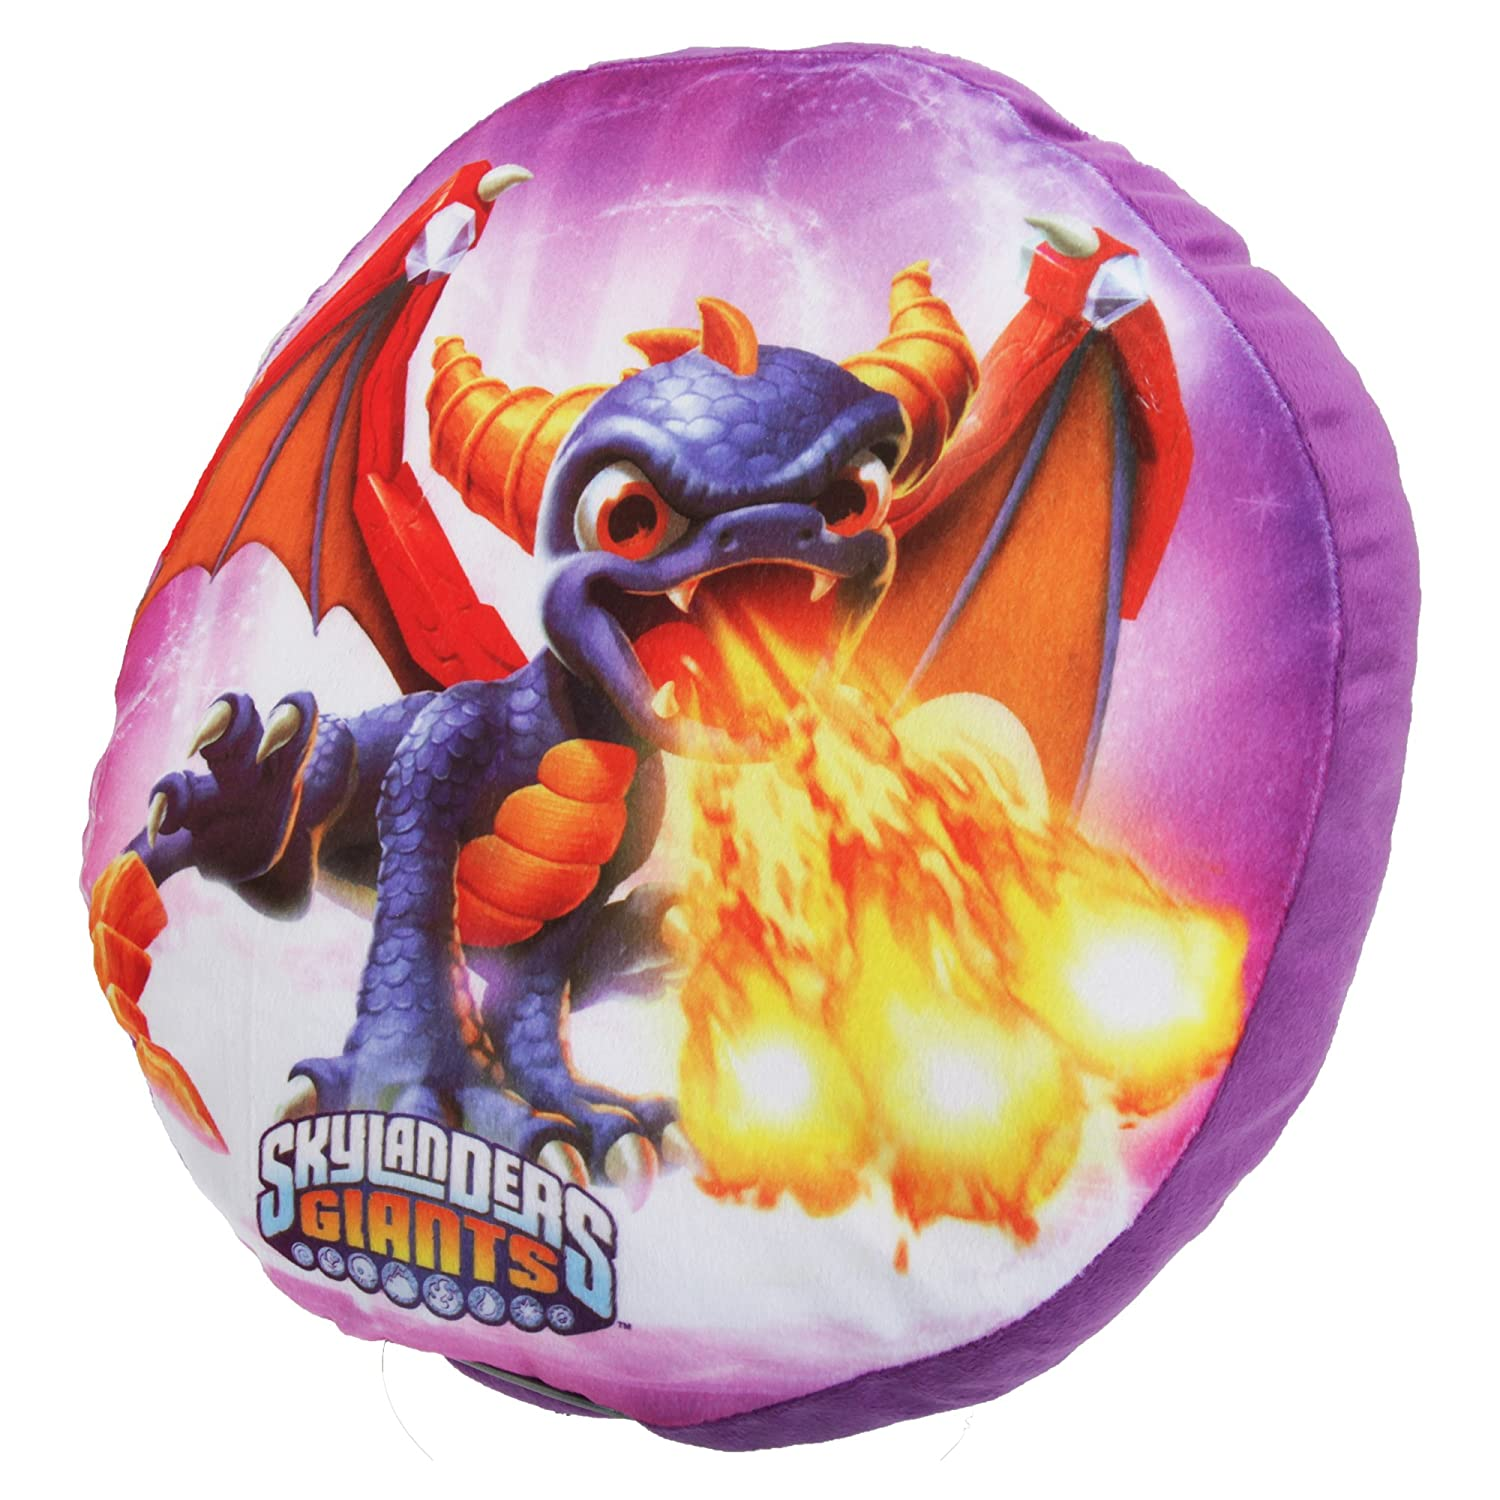 Skylander Giants Childrens/Kids Circle Spyro Cushion (One Size) (Purple) UTCU218_1